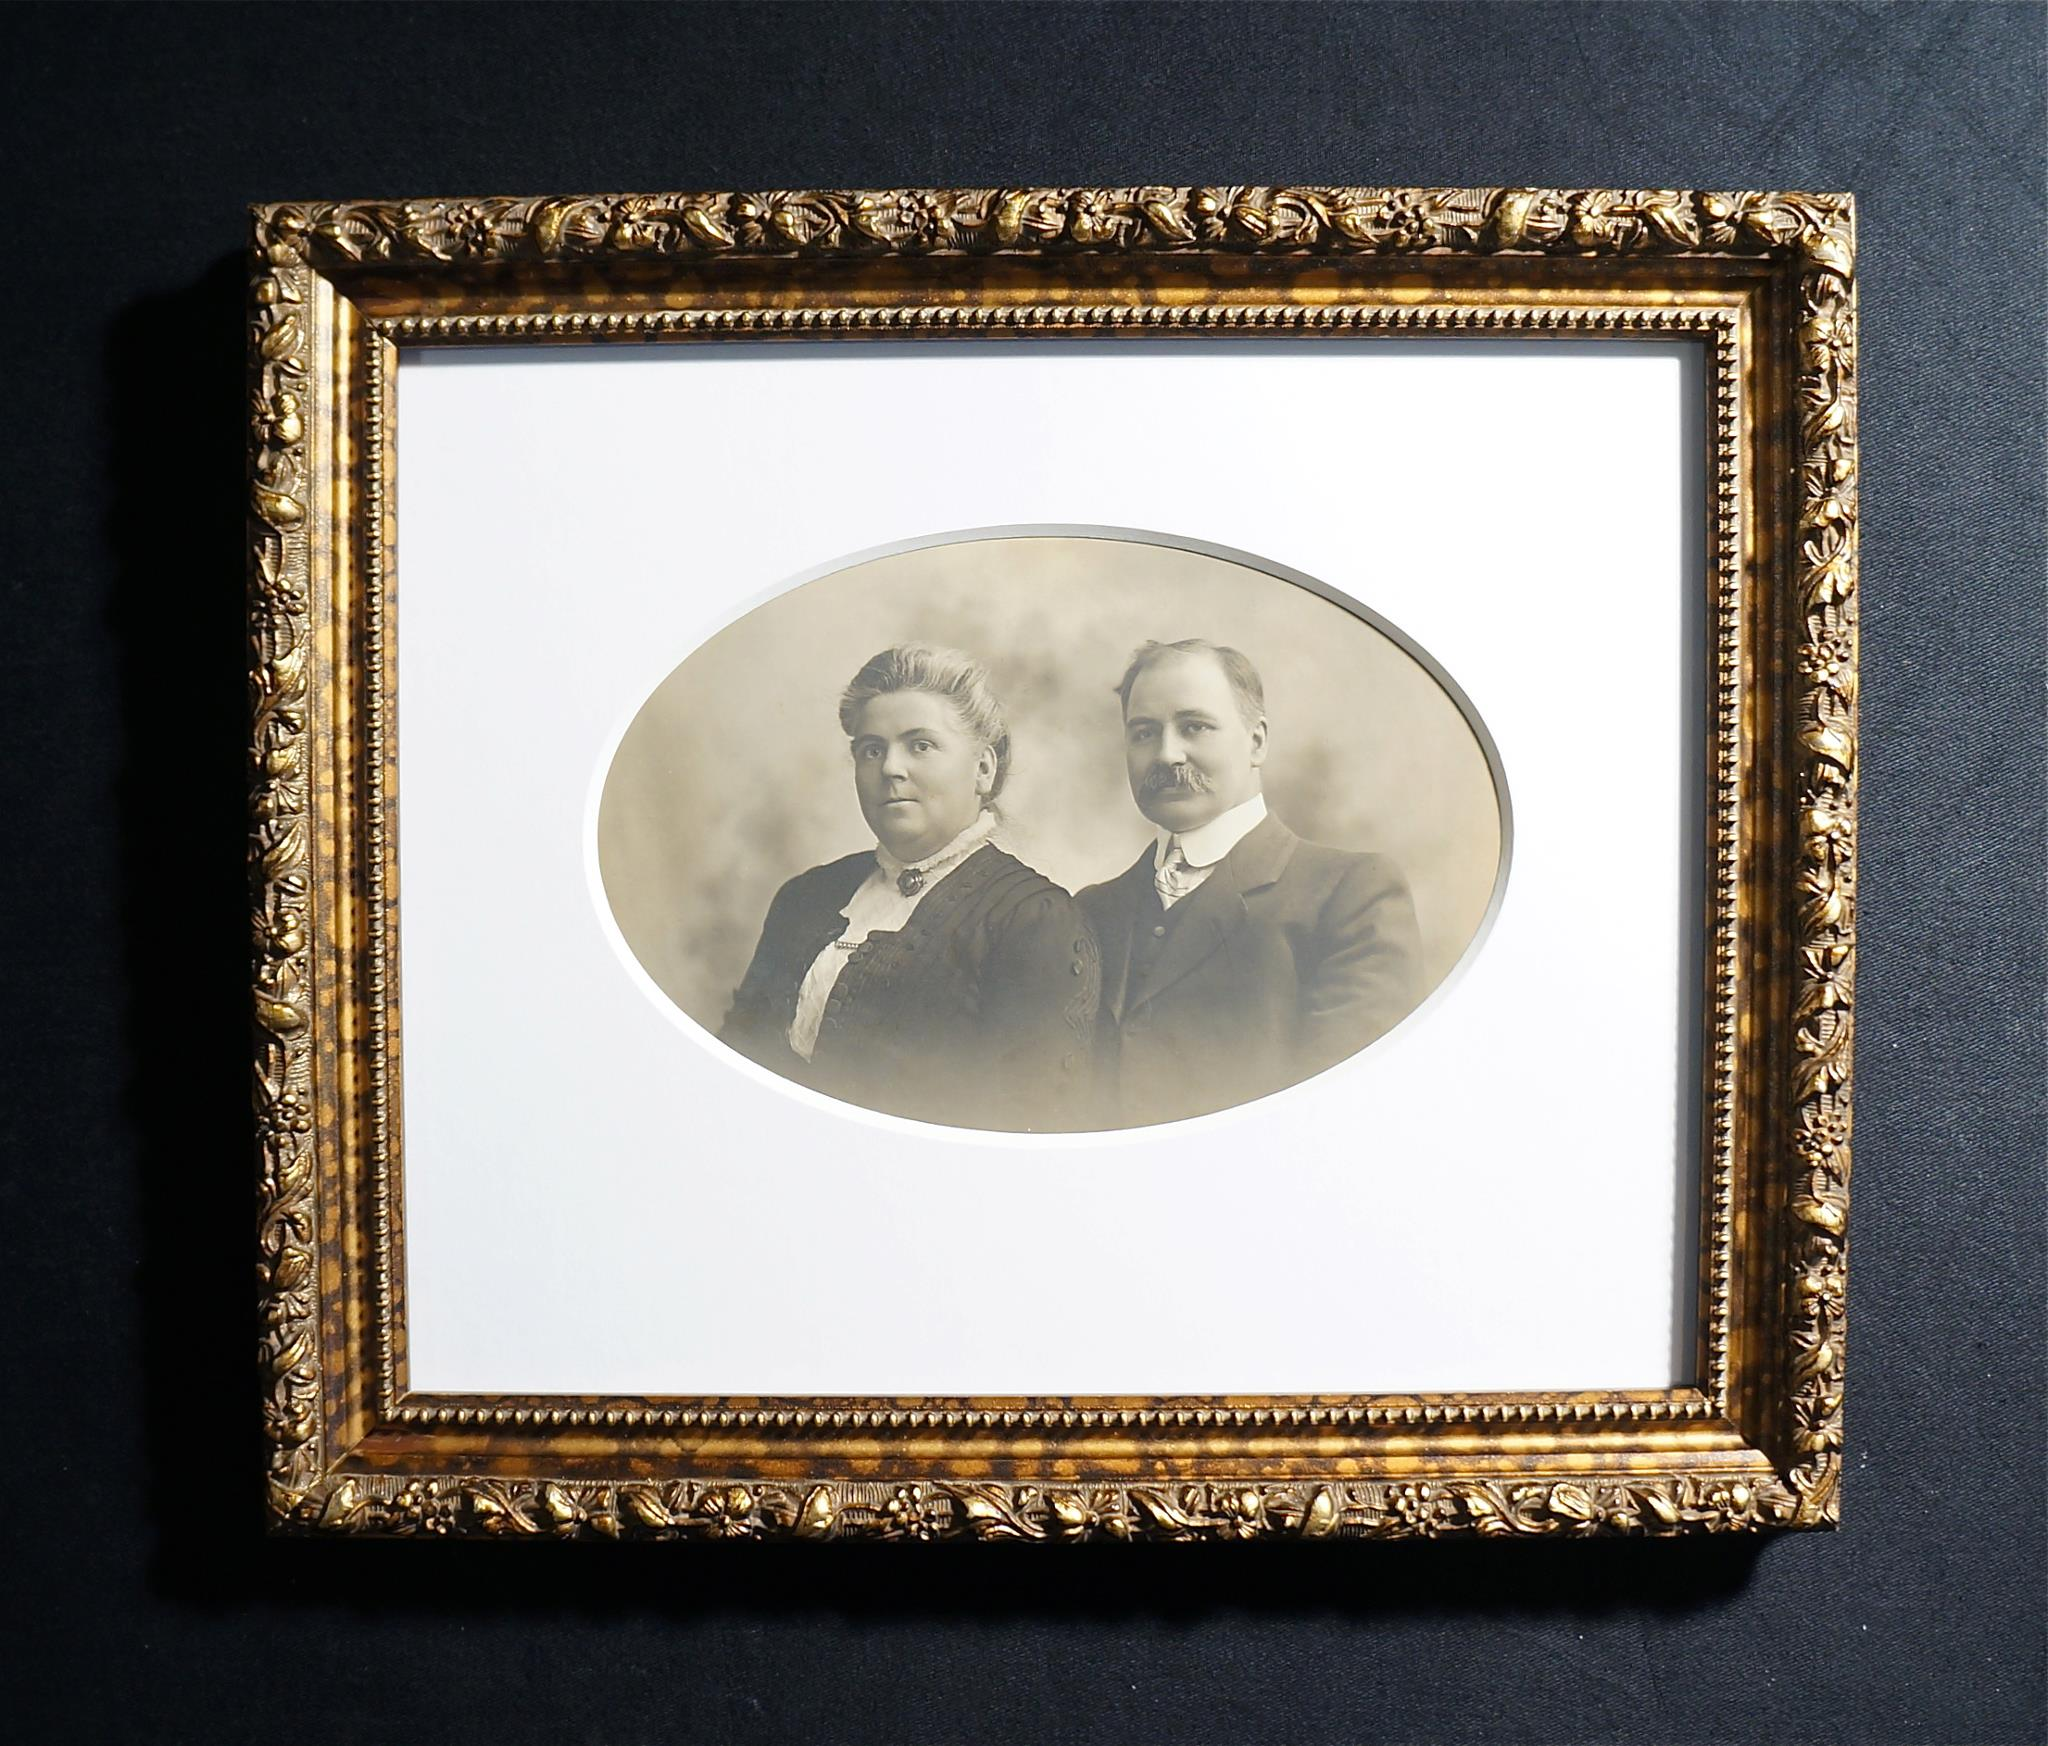 Formal framing of original B&W portrait